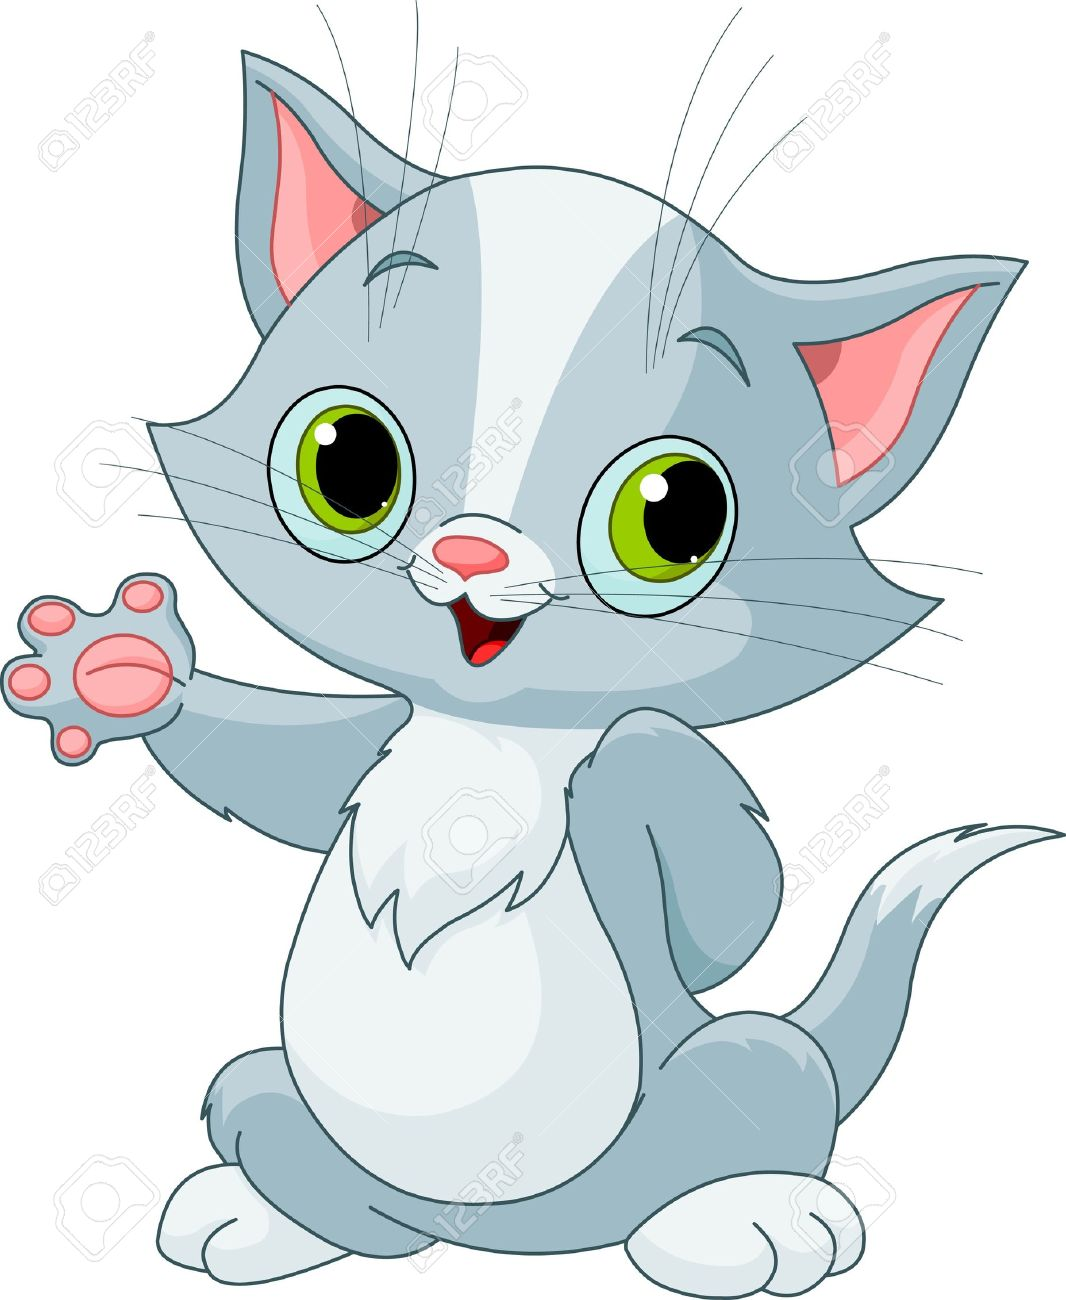 Illustration Cute Kitten Showing Royalty Free Cliparts Vectors